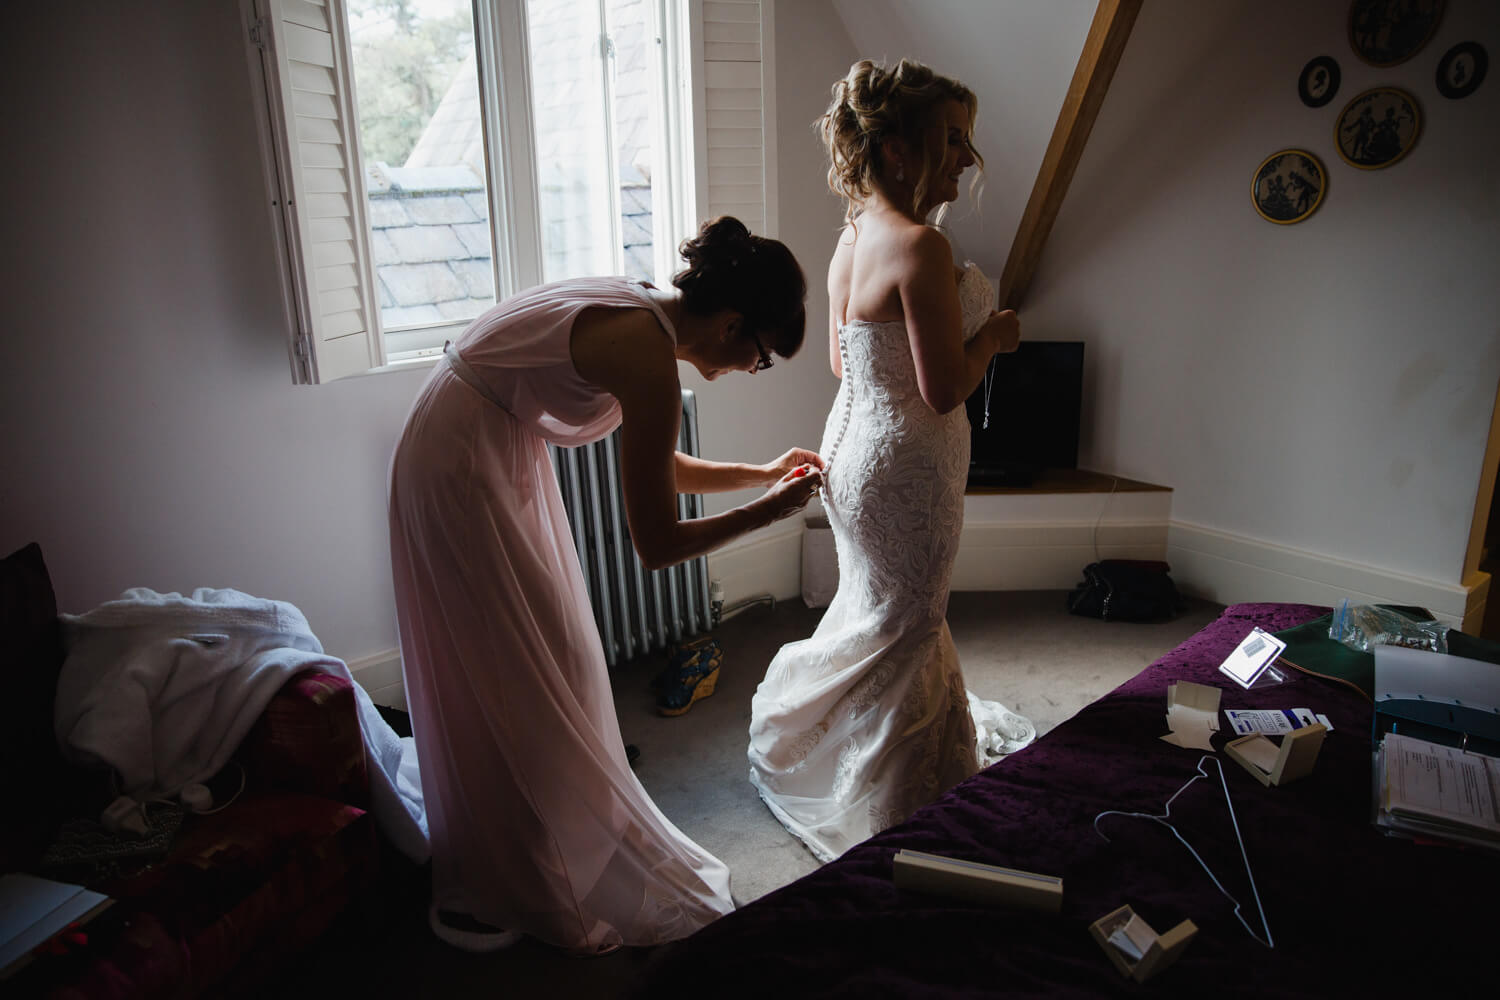 bride rehearsing wedding nuptials before ceremony at didsbury house